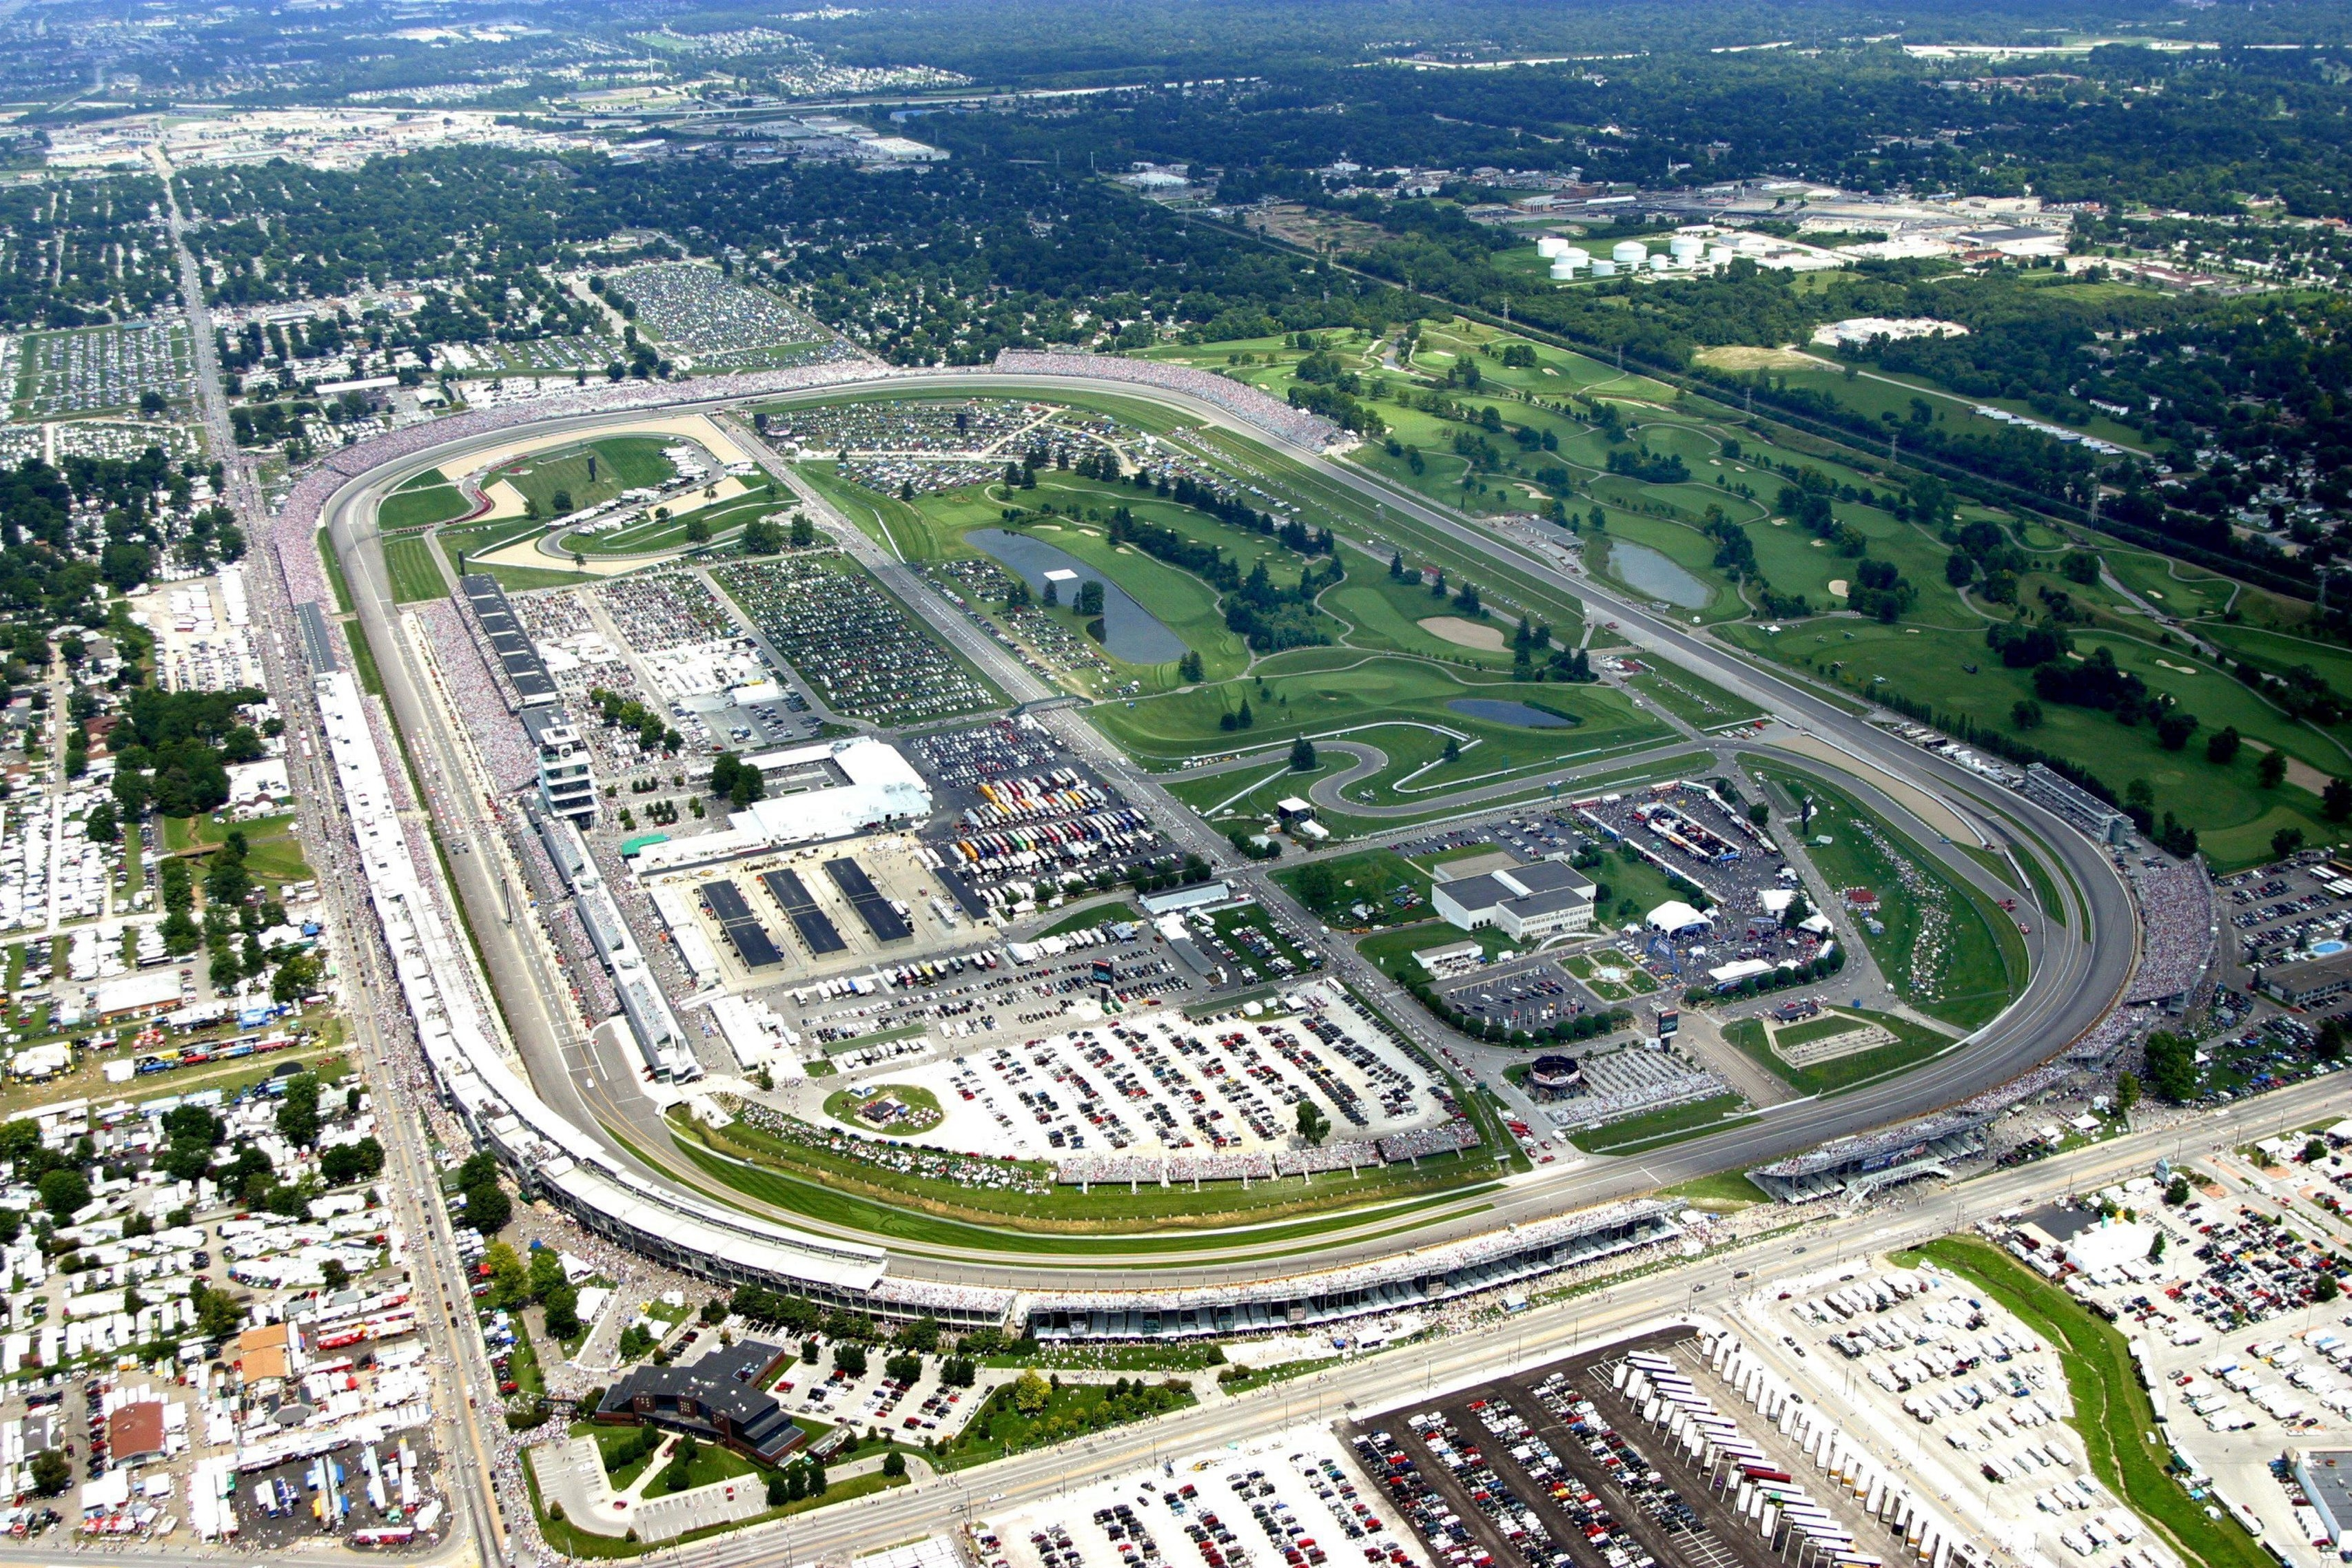 Brickyard Crossing, part of the state's Pete Dye Golf Trail, includes four holes inside the famed Indianapolis Motor Speedway. (Courtesy of Brickyard Crossing/MCT)